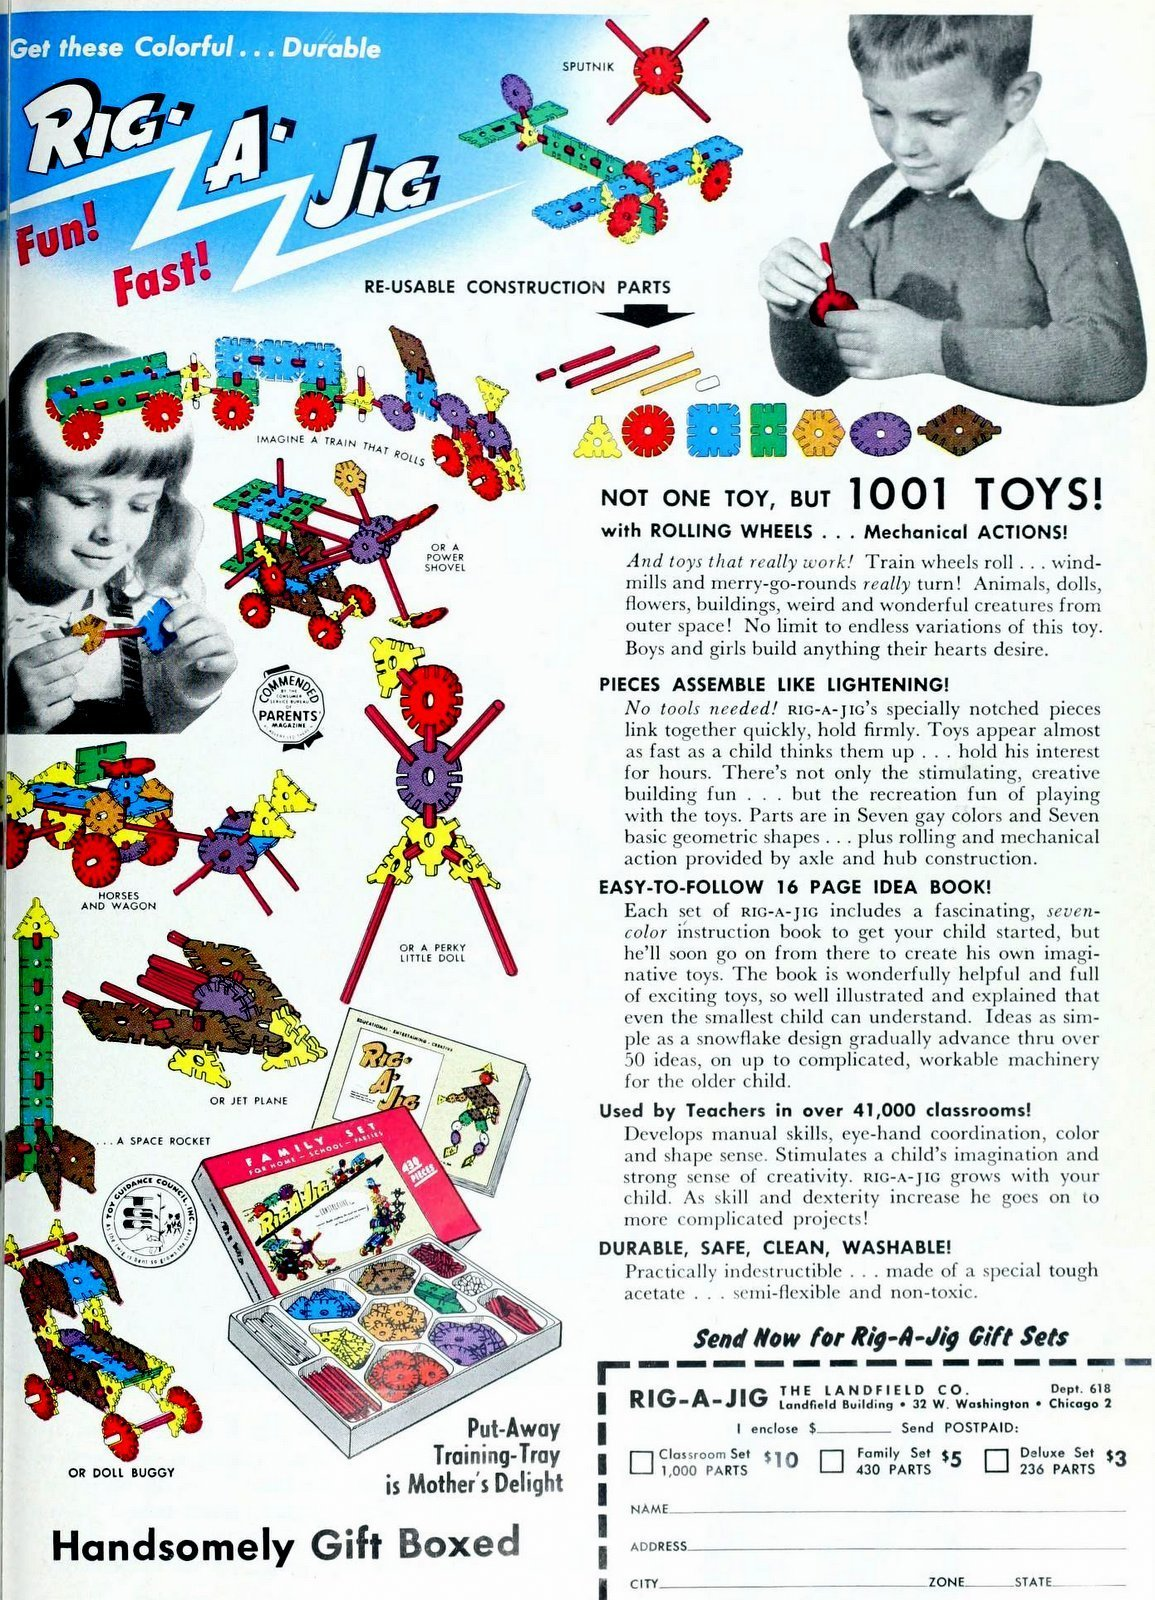 Rig-a-Jig toys with re-usable construction parts (1958)